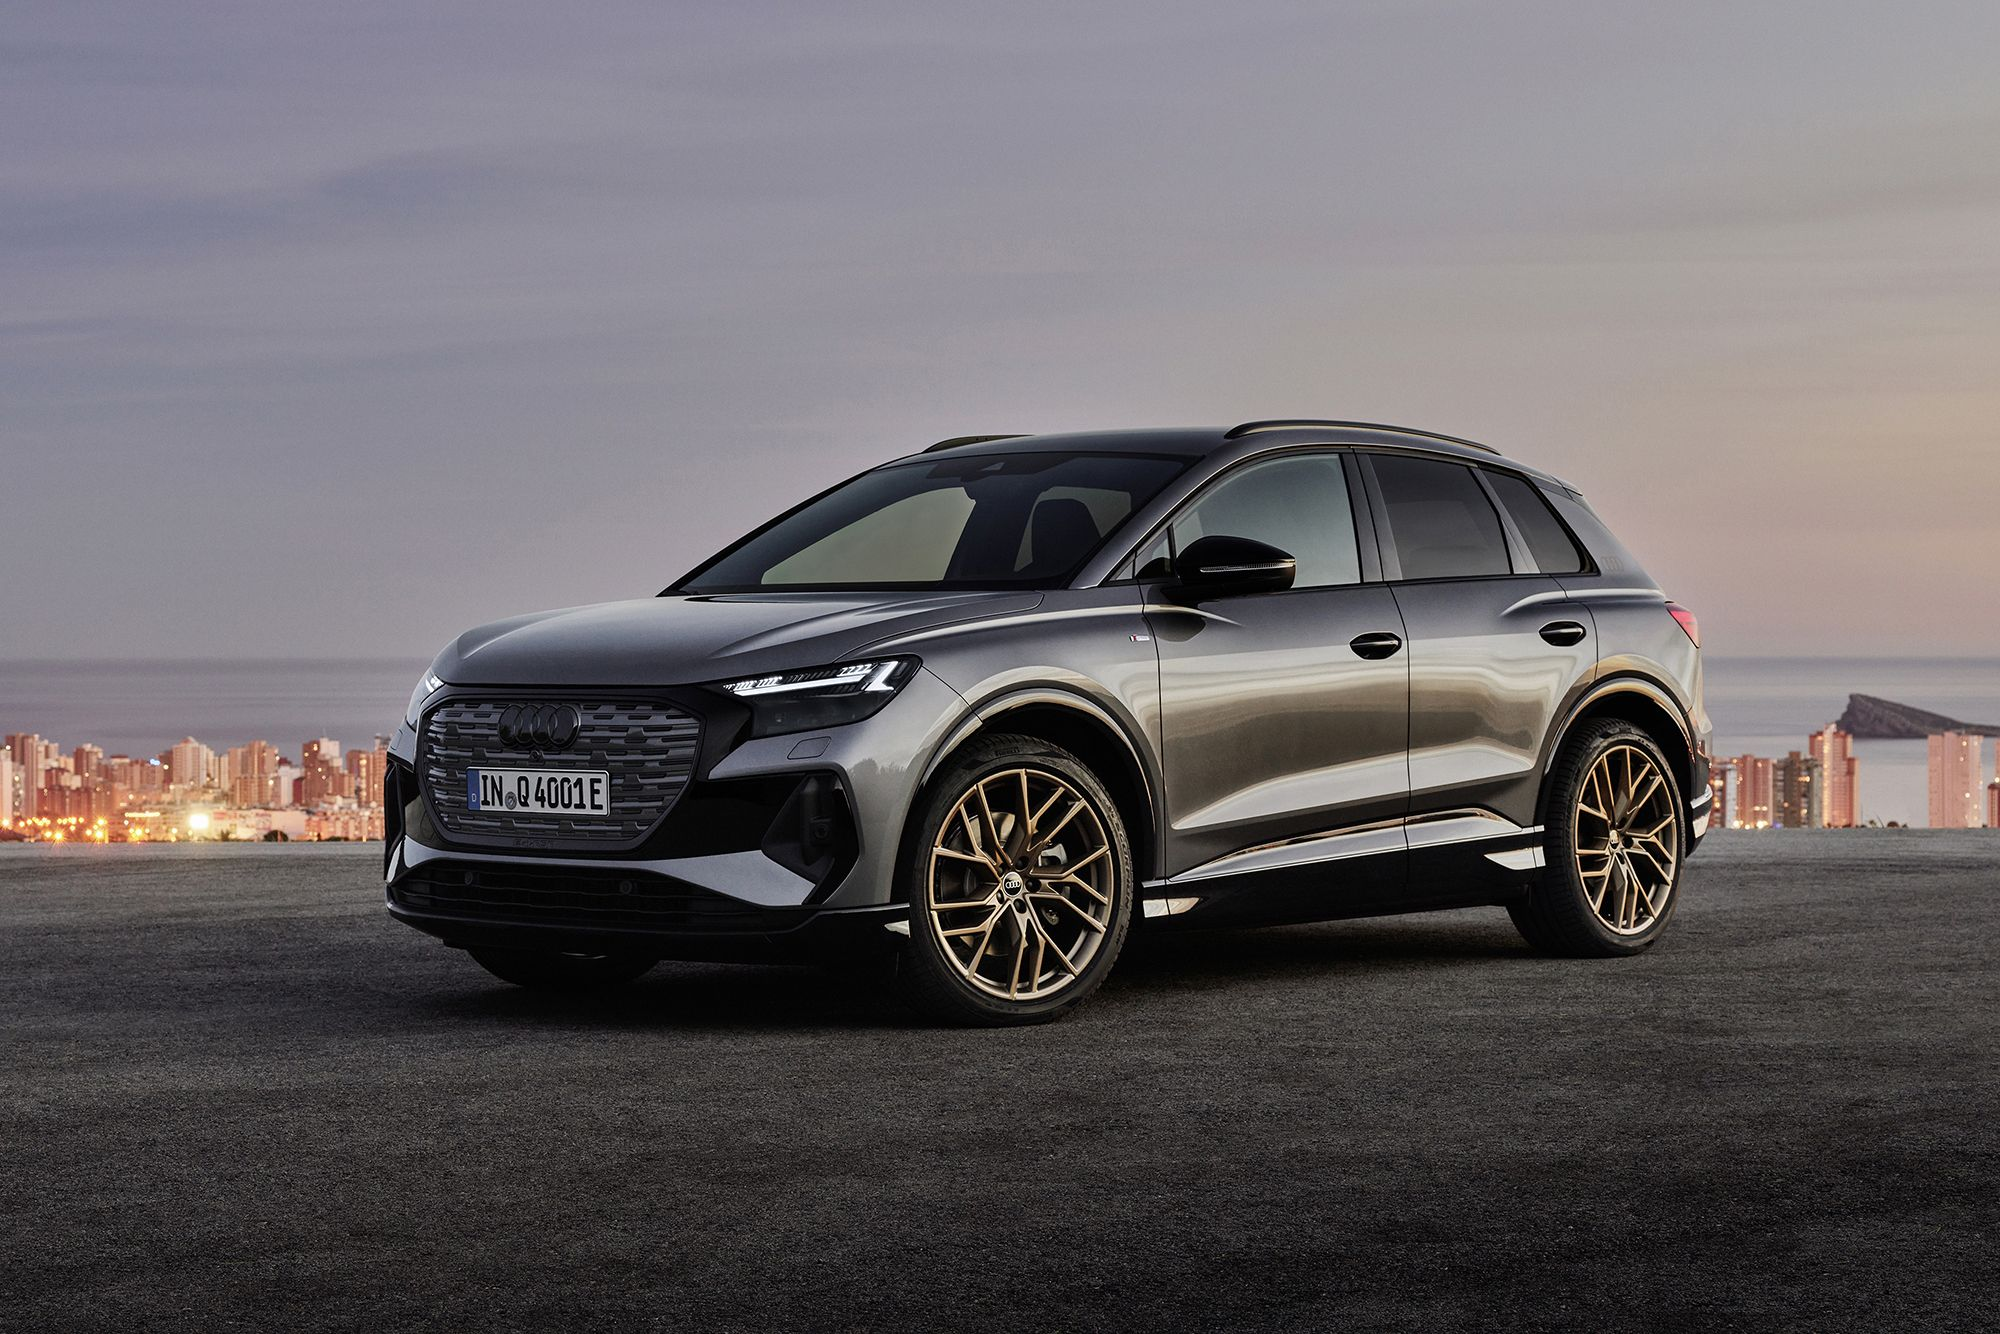 The 2022 Audi Q4 E-Tron Has a Wild Heads-Up Display and 250 Miles of Range